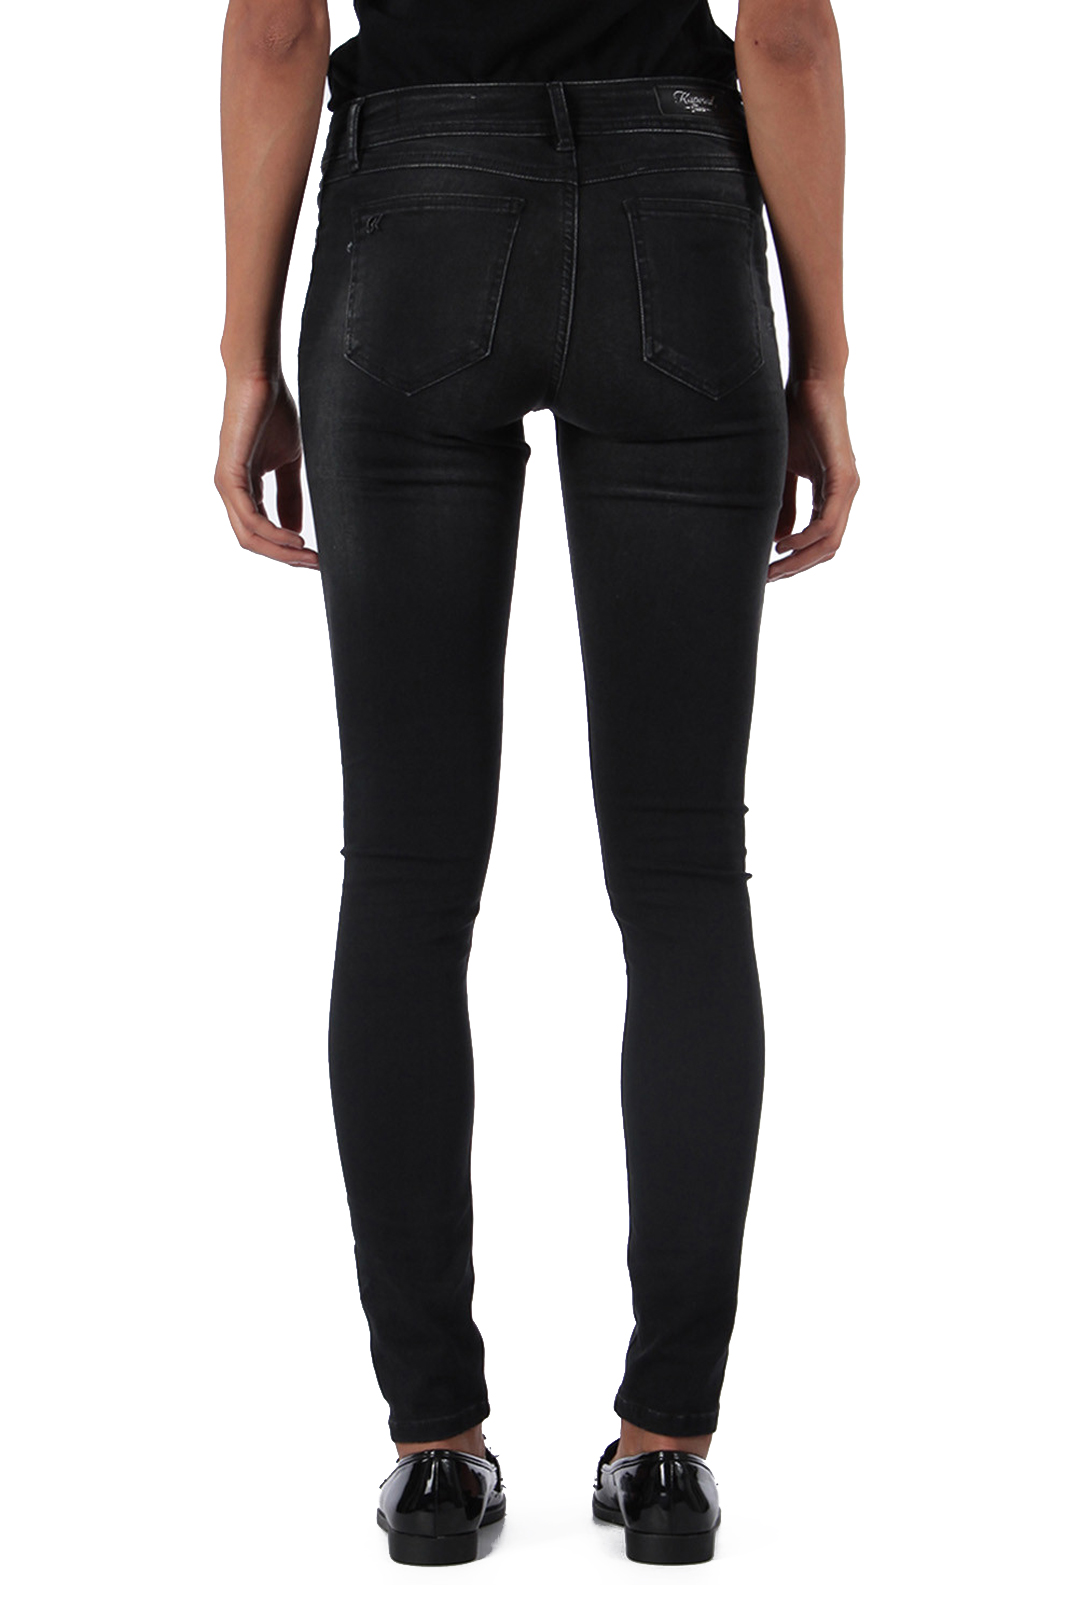 Jeans   Kaporal POWER H18W7 OLD BLACK